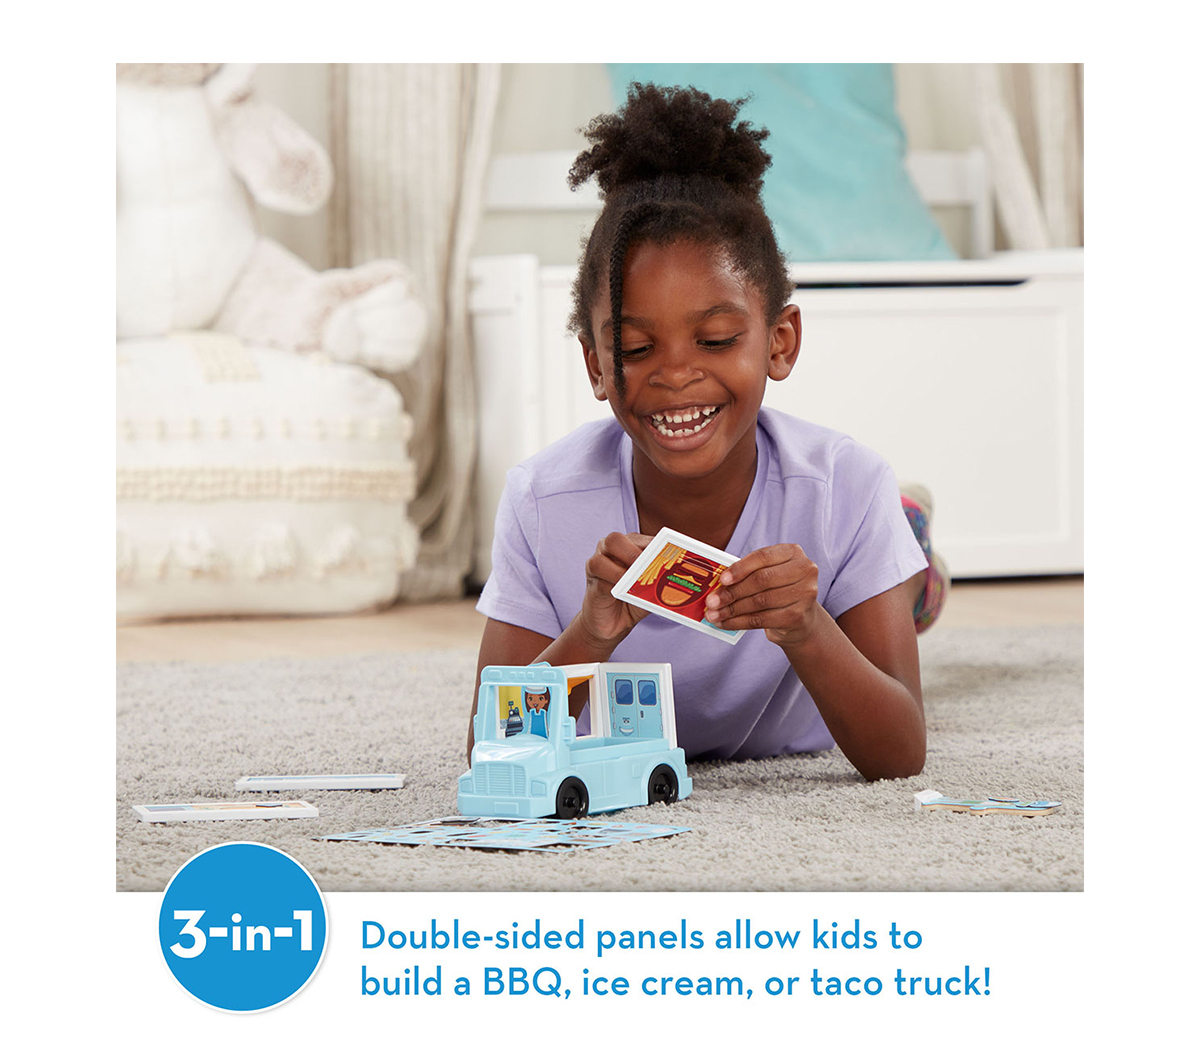 3-in-1: Double-sided panels allow kids to build a BBQ, ice cream, or taco truck!